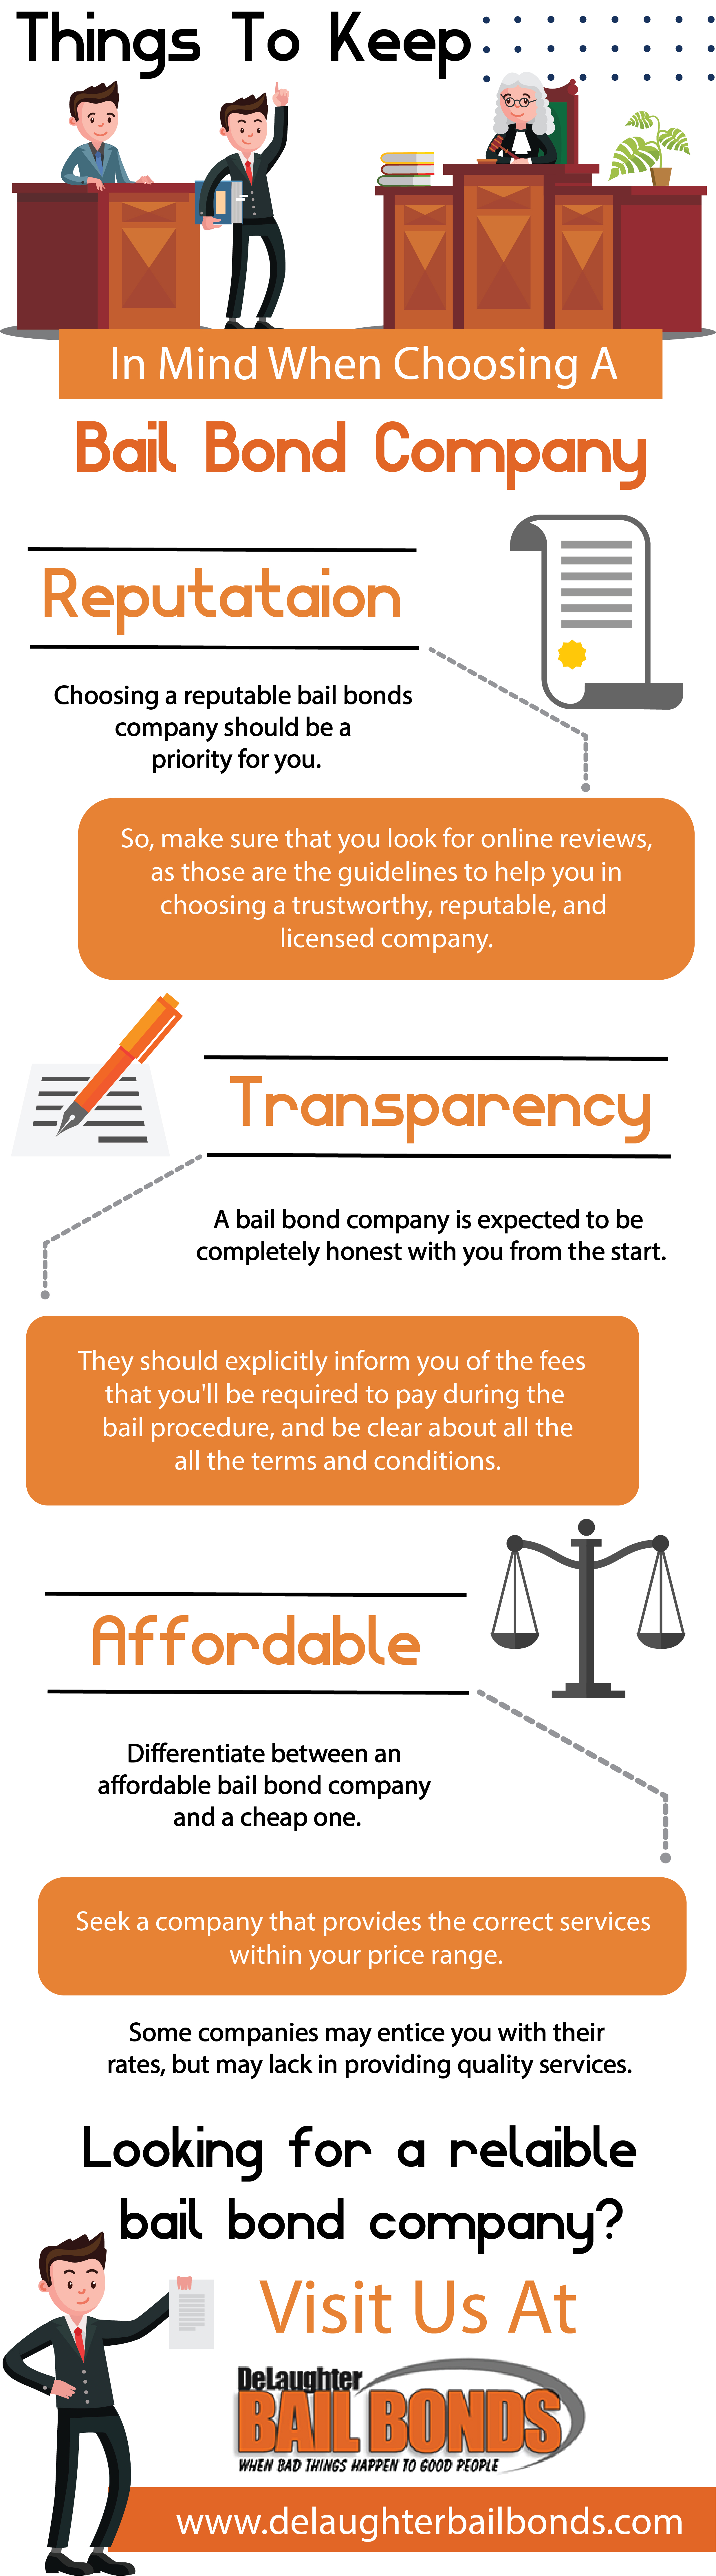 Things To Keep In Mind When Choosing A Bail Bond Company